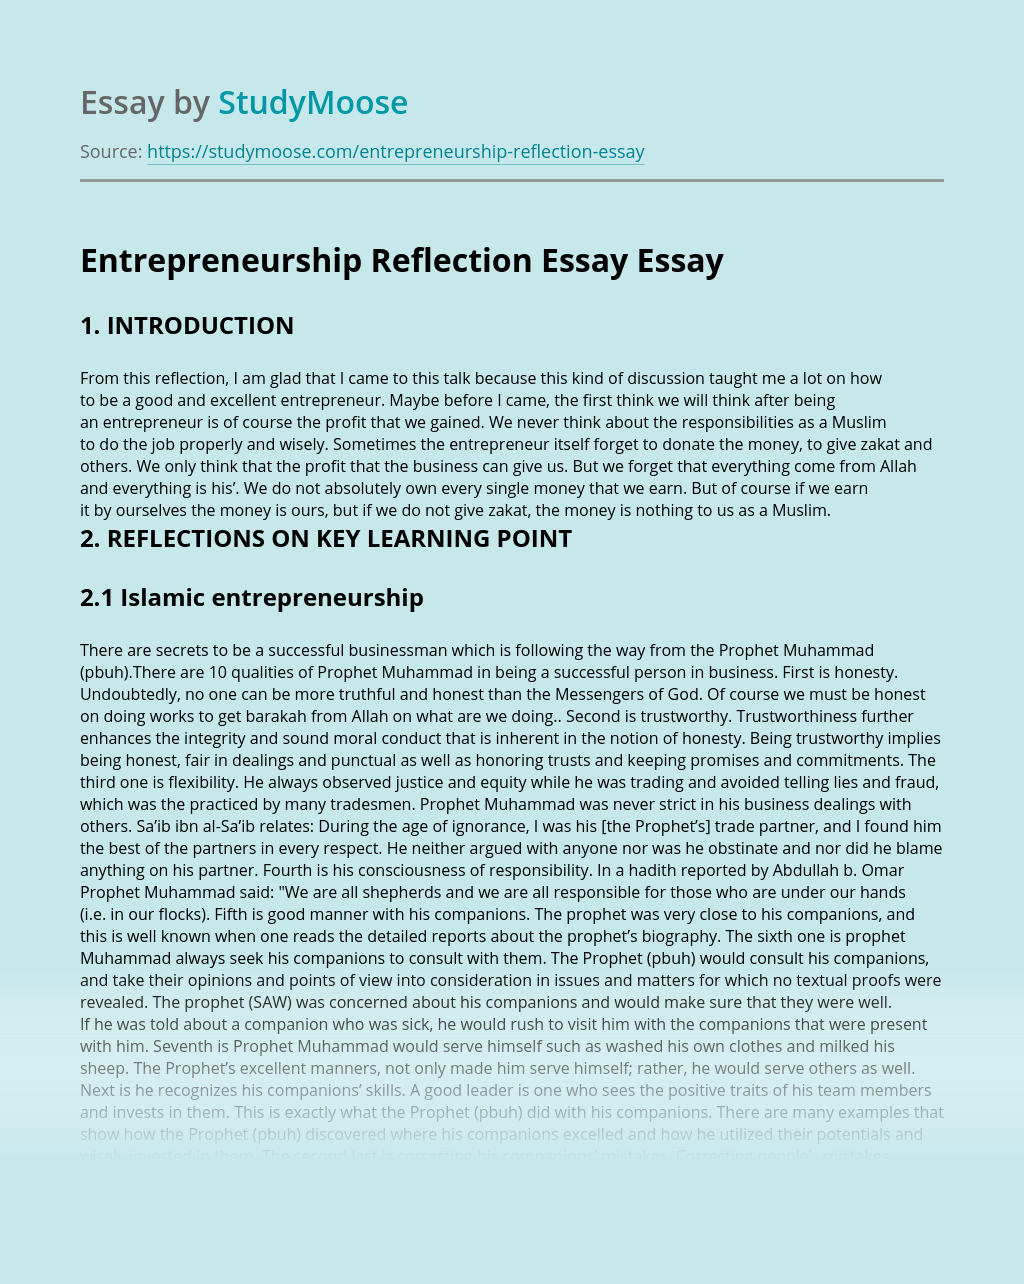 Entrepreneurship Reflection Essay